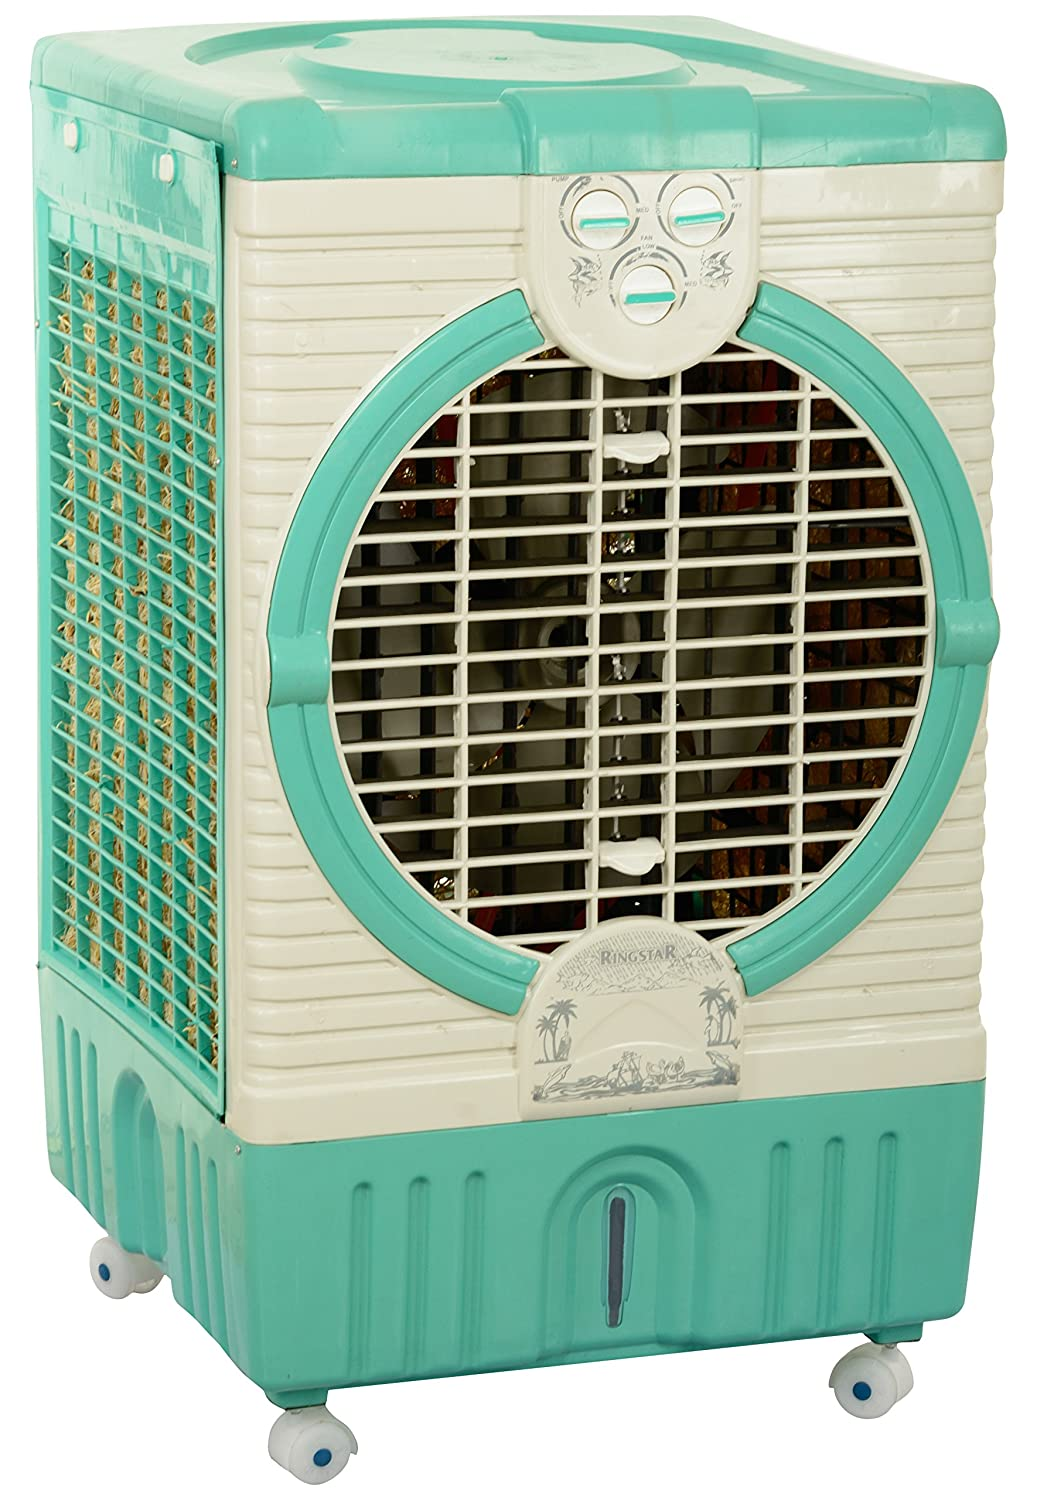 Best Air Cooler Under 5000 in India | Air Cooler Below Rs 5000 In india